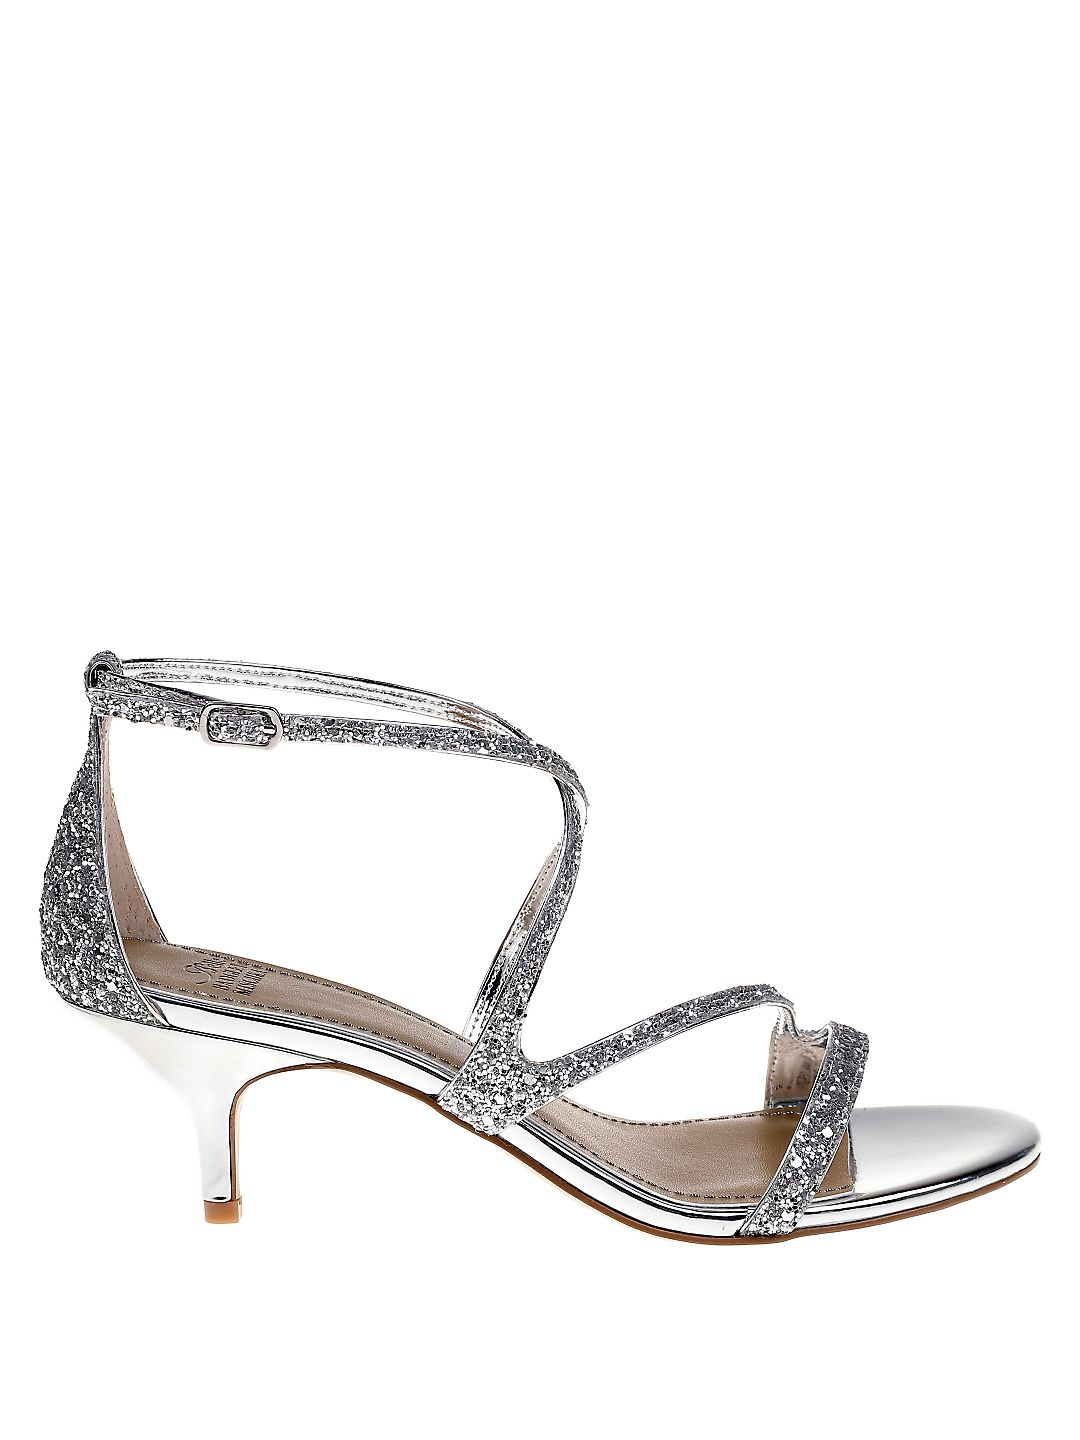 Queen Glitter Kitten Sandals Economical, stylish, and eye-catching shoes